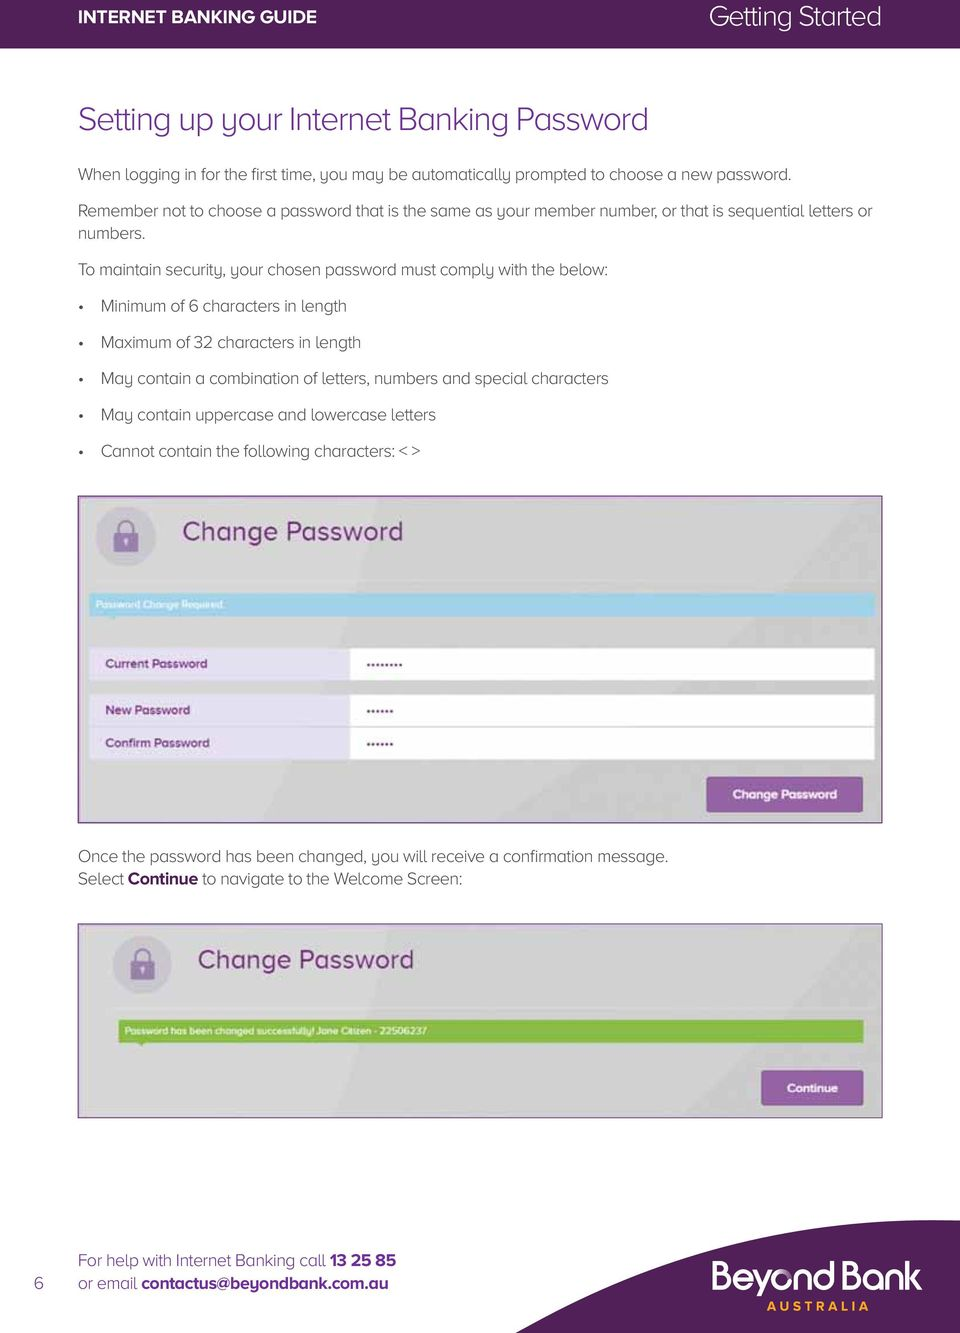 To maintain security, your chosen password must comply with the below: Minimum of 6 characters in length Maximum of 32 characters in length May contain a combination of